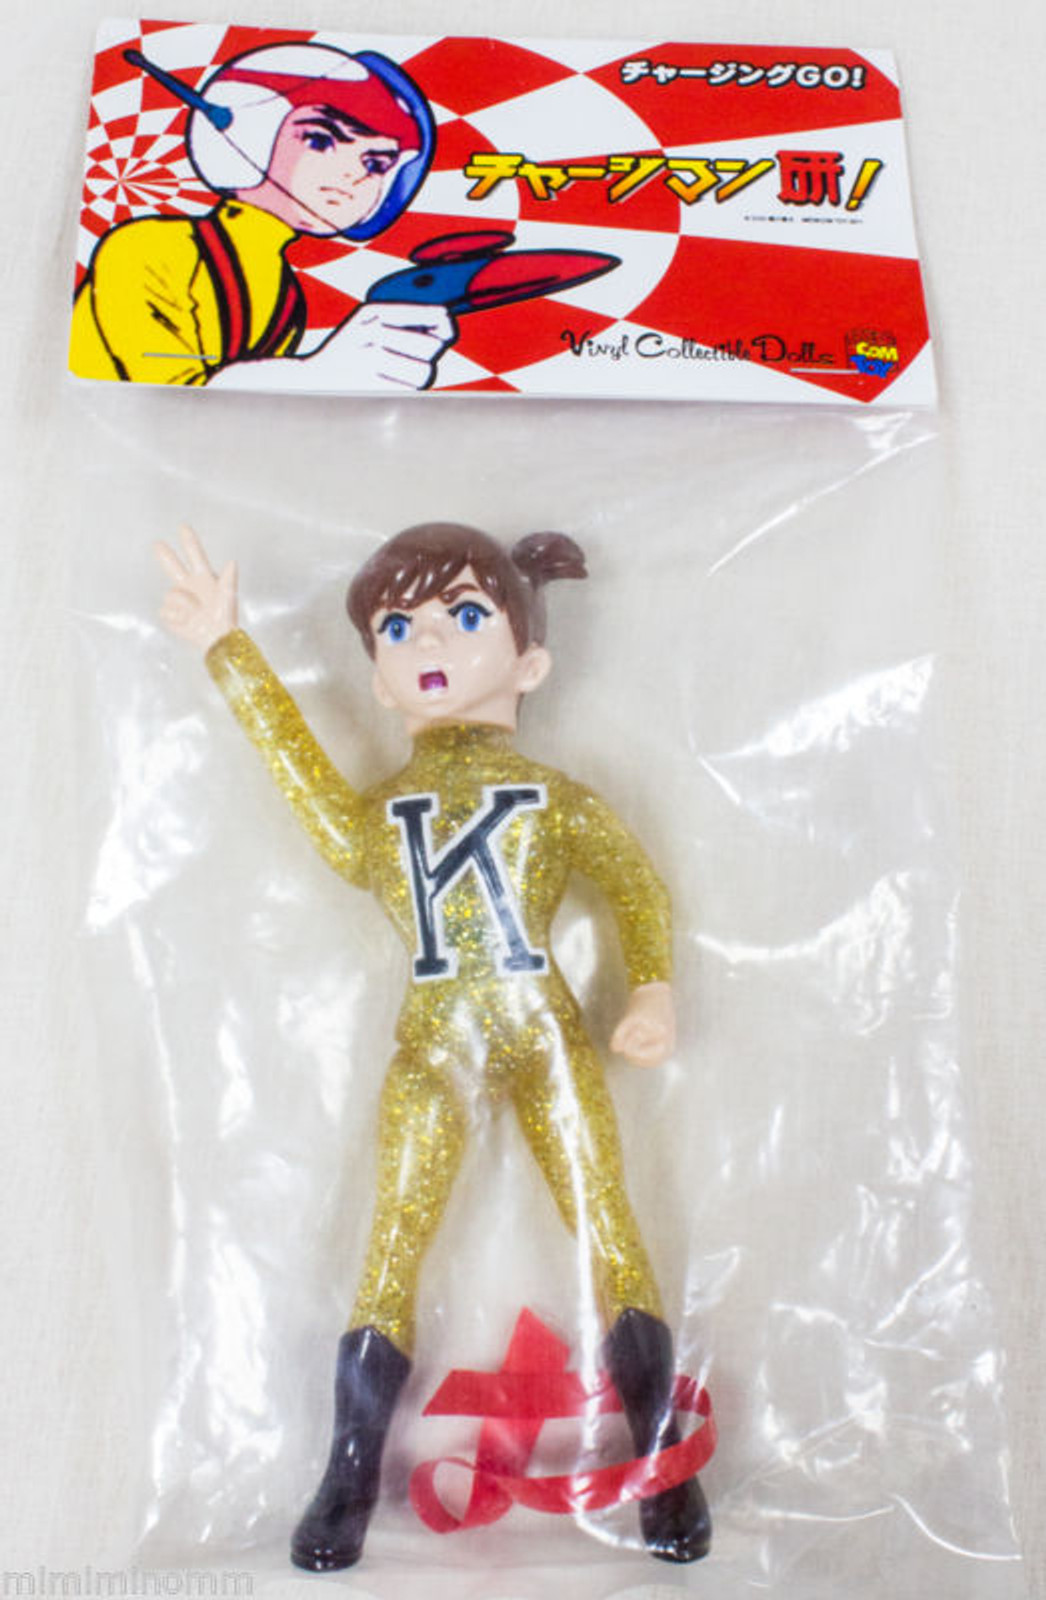 Charge Man Ken 300 Limited Figure Sparkle Medicom Toy VCD JAPAN ANIME MANGA